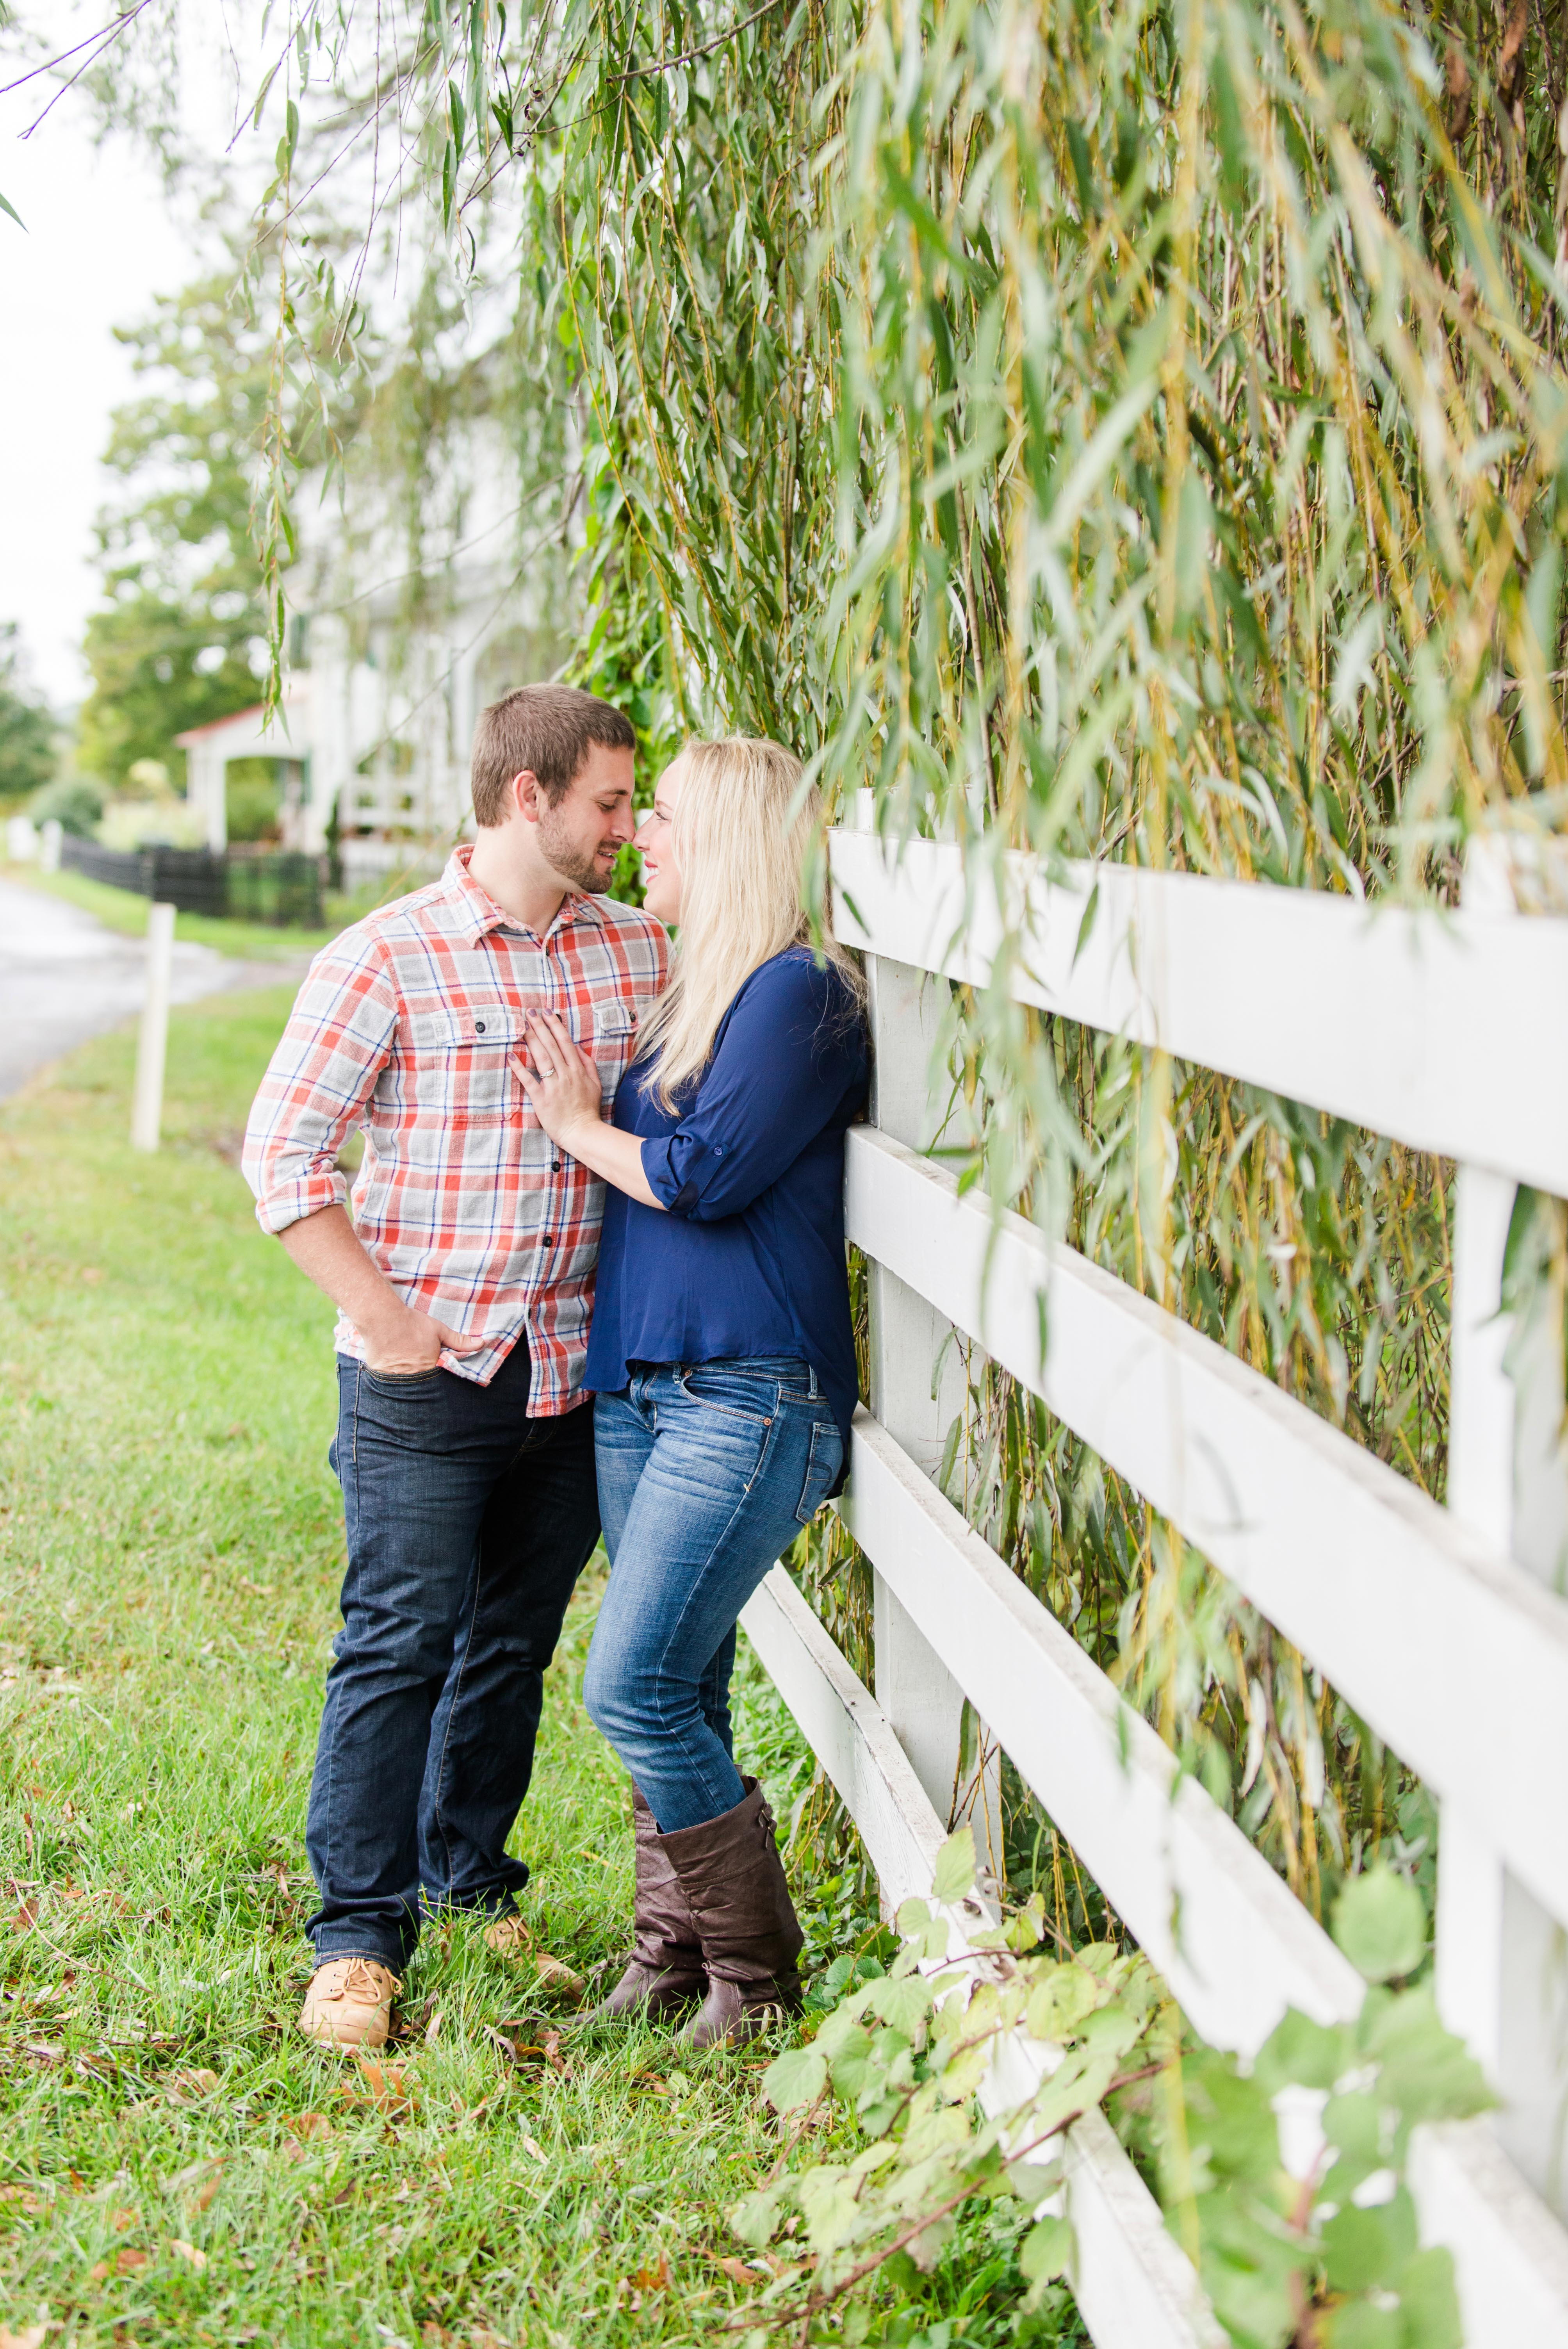 Abbey and Carl Engagement Photos Rodale Institute Kutztown Pennsylvania Andrea Krout Photography-42